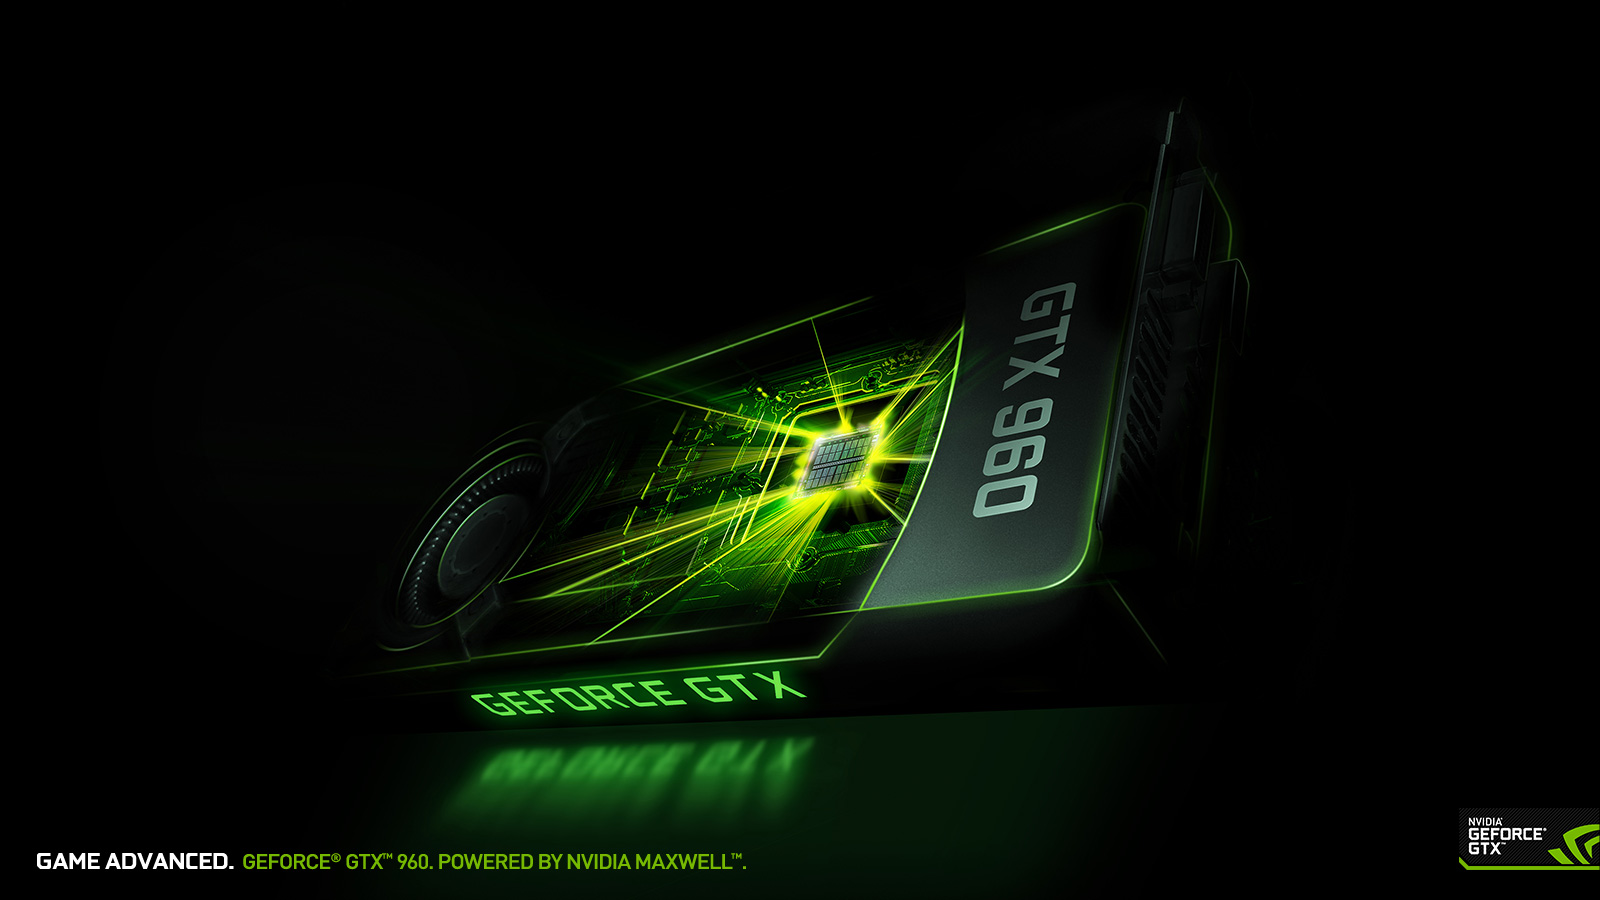 download the geforce gtx 960 wallpapers | geforce